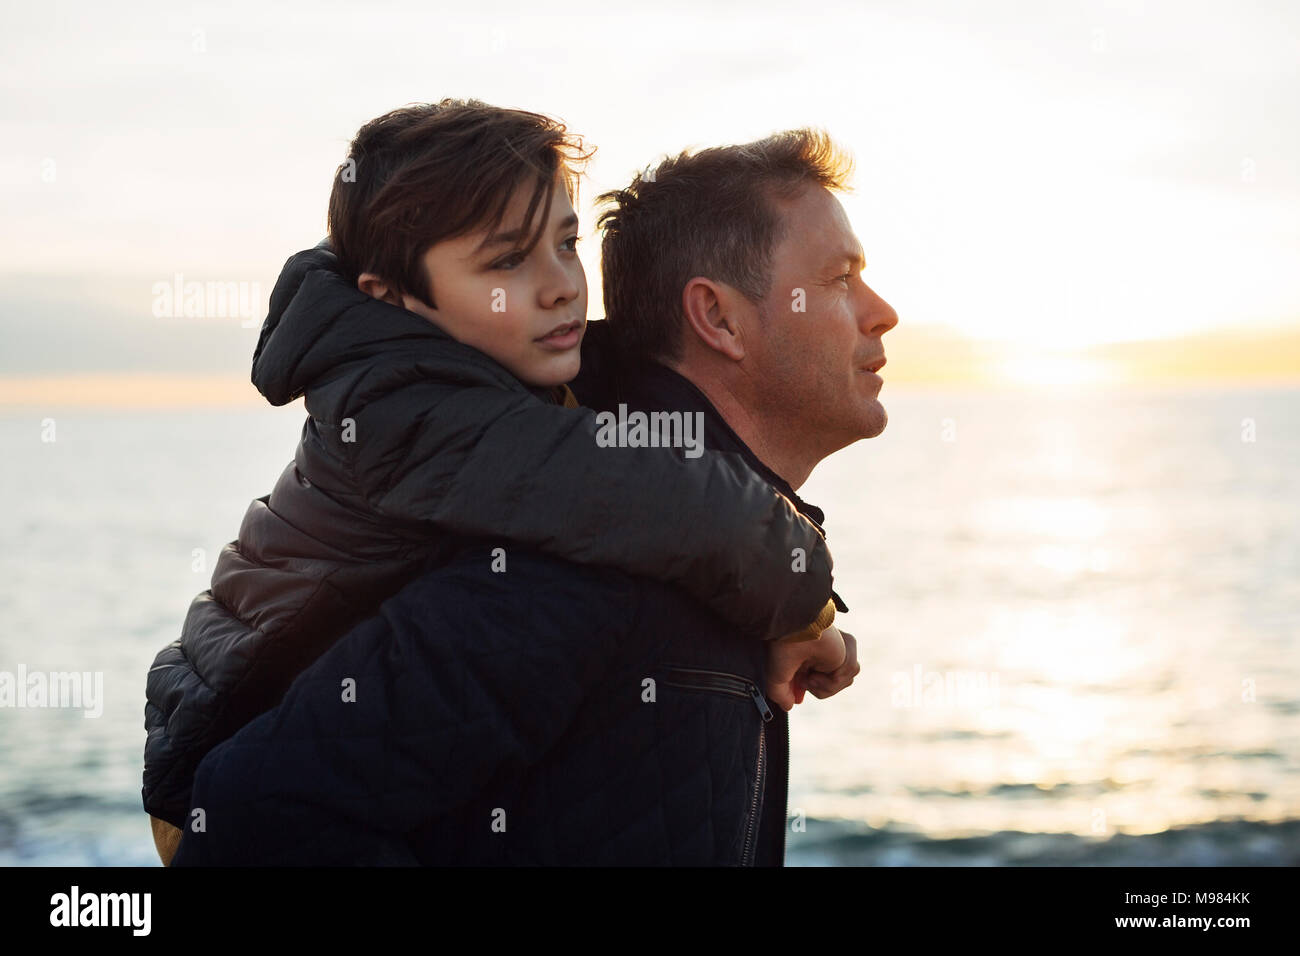 Father carrying son piggyback by the sea - Stock Image